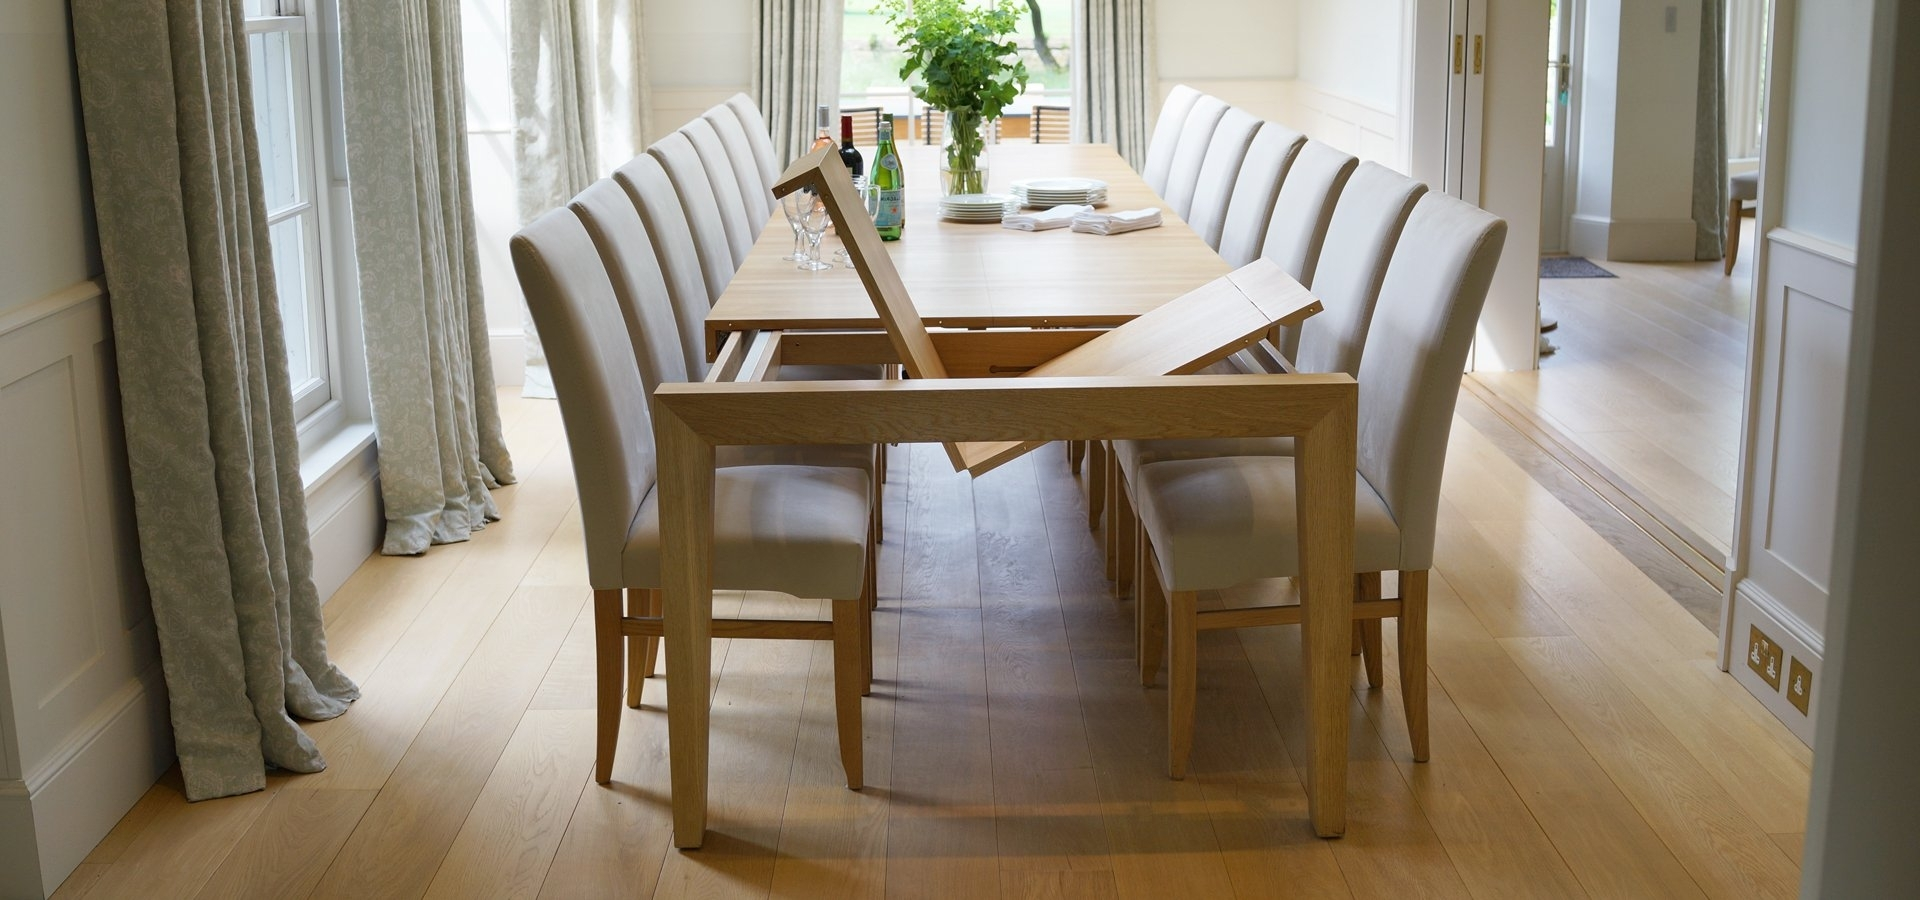 Well Known Oak Extendable Dining Tables And Chairs Inside Contemporary Dining Tables & Furnitureberrydesign (View 8 of 25)